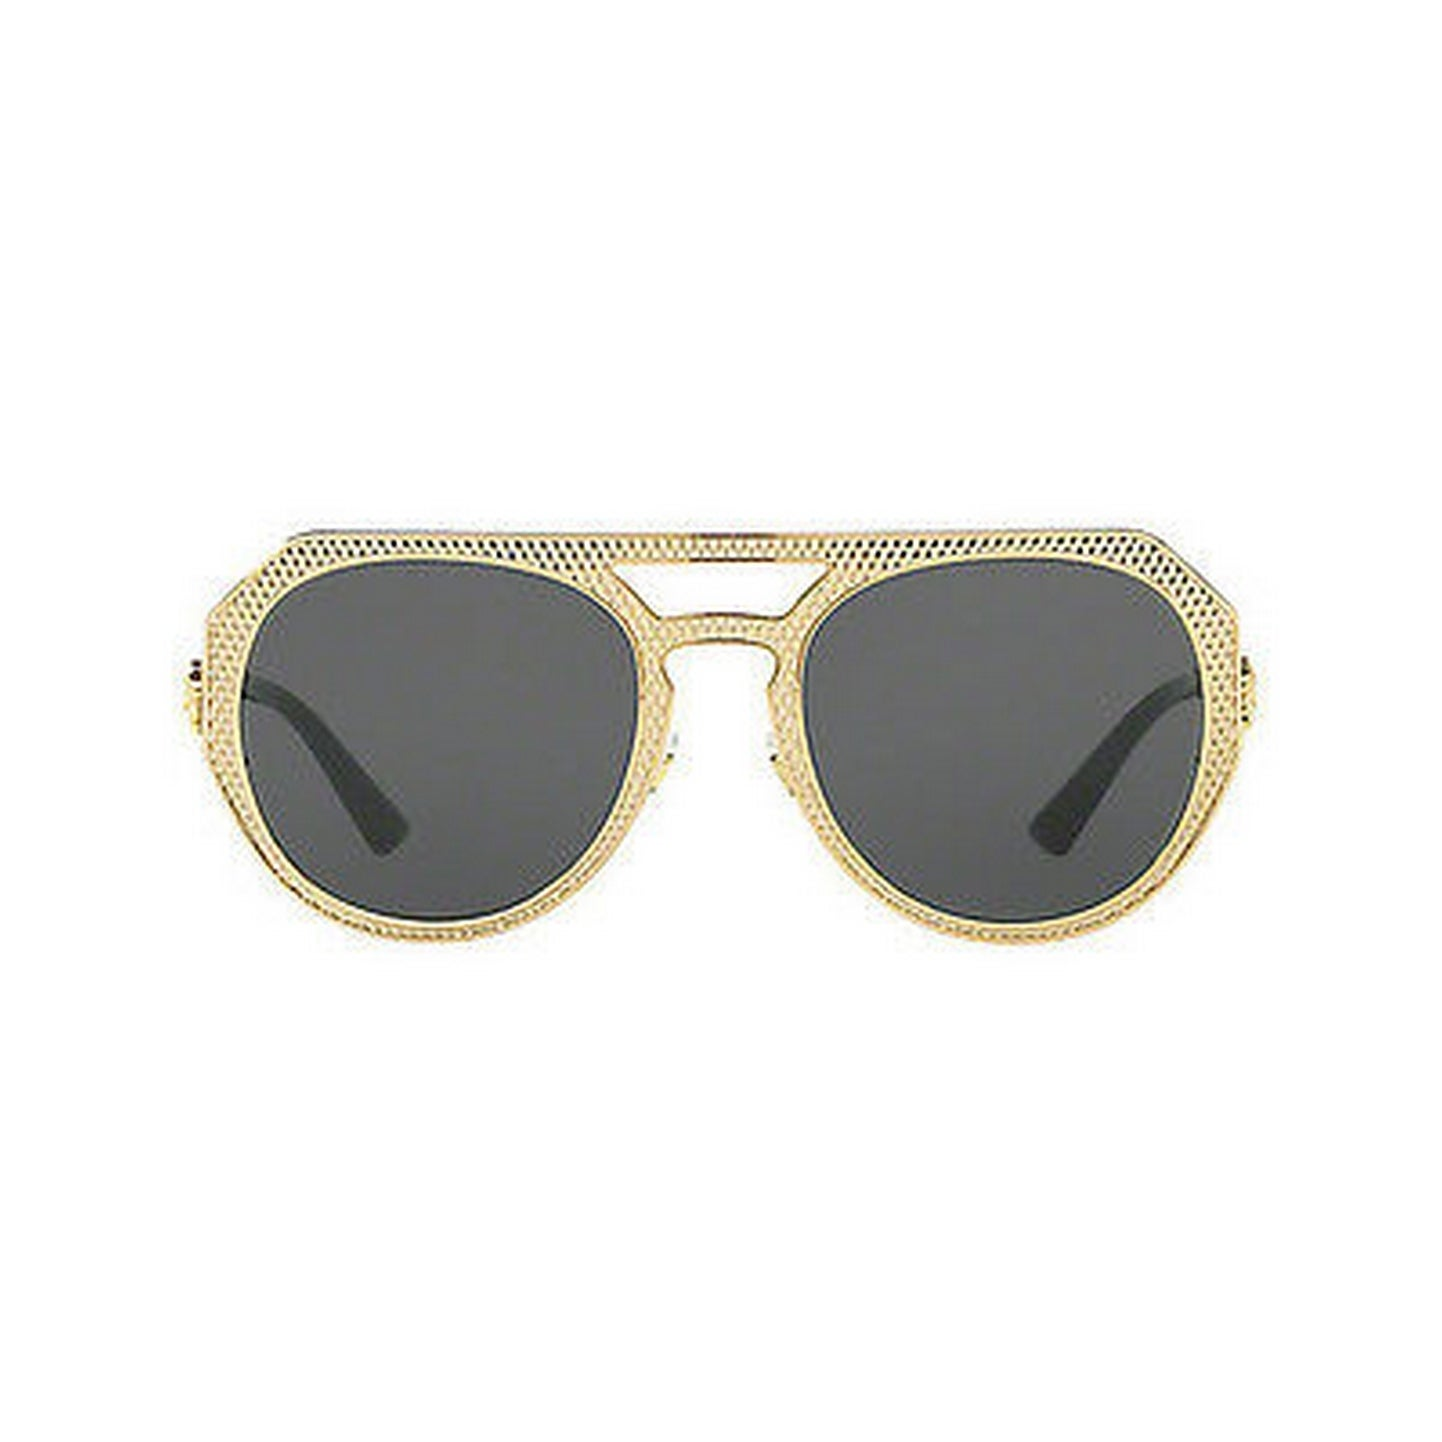 9b38817f8ff Shop Versace Women s VE2175 100287 60 Round Metal Plastic Gold Grey  Sunglasses - Free Shipping Today - Overstock - 14680421